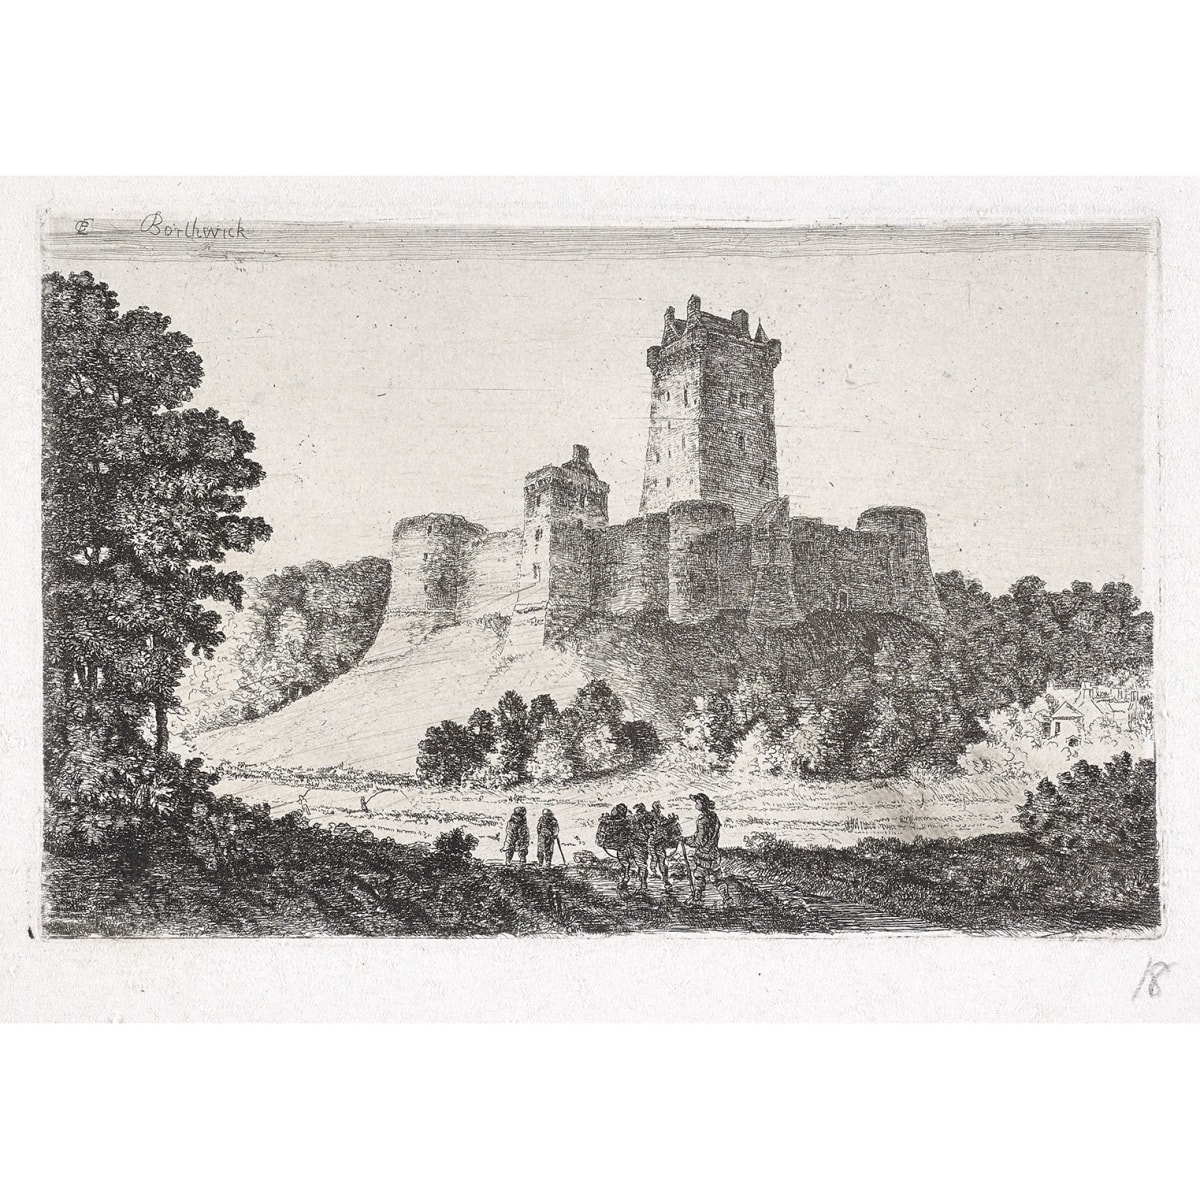 John Clerk of Eldin Borthwick Castle from the East titled 'Borthwick' and initialled CE in plate etching and drypoint 4 x 6 1/4 inches only state